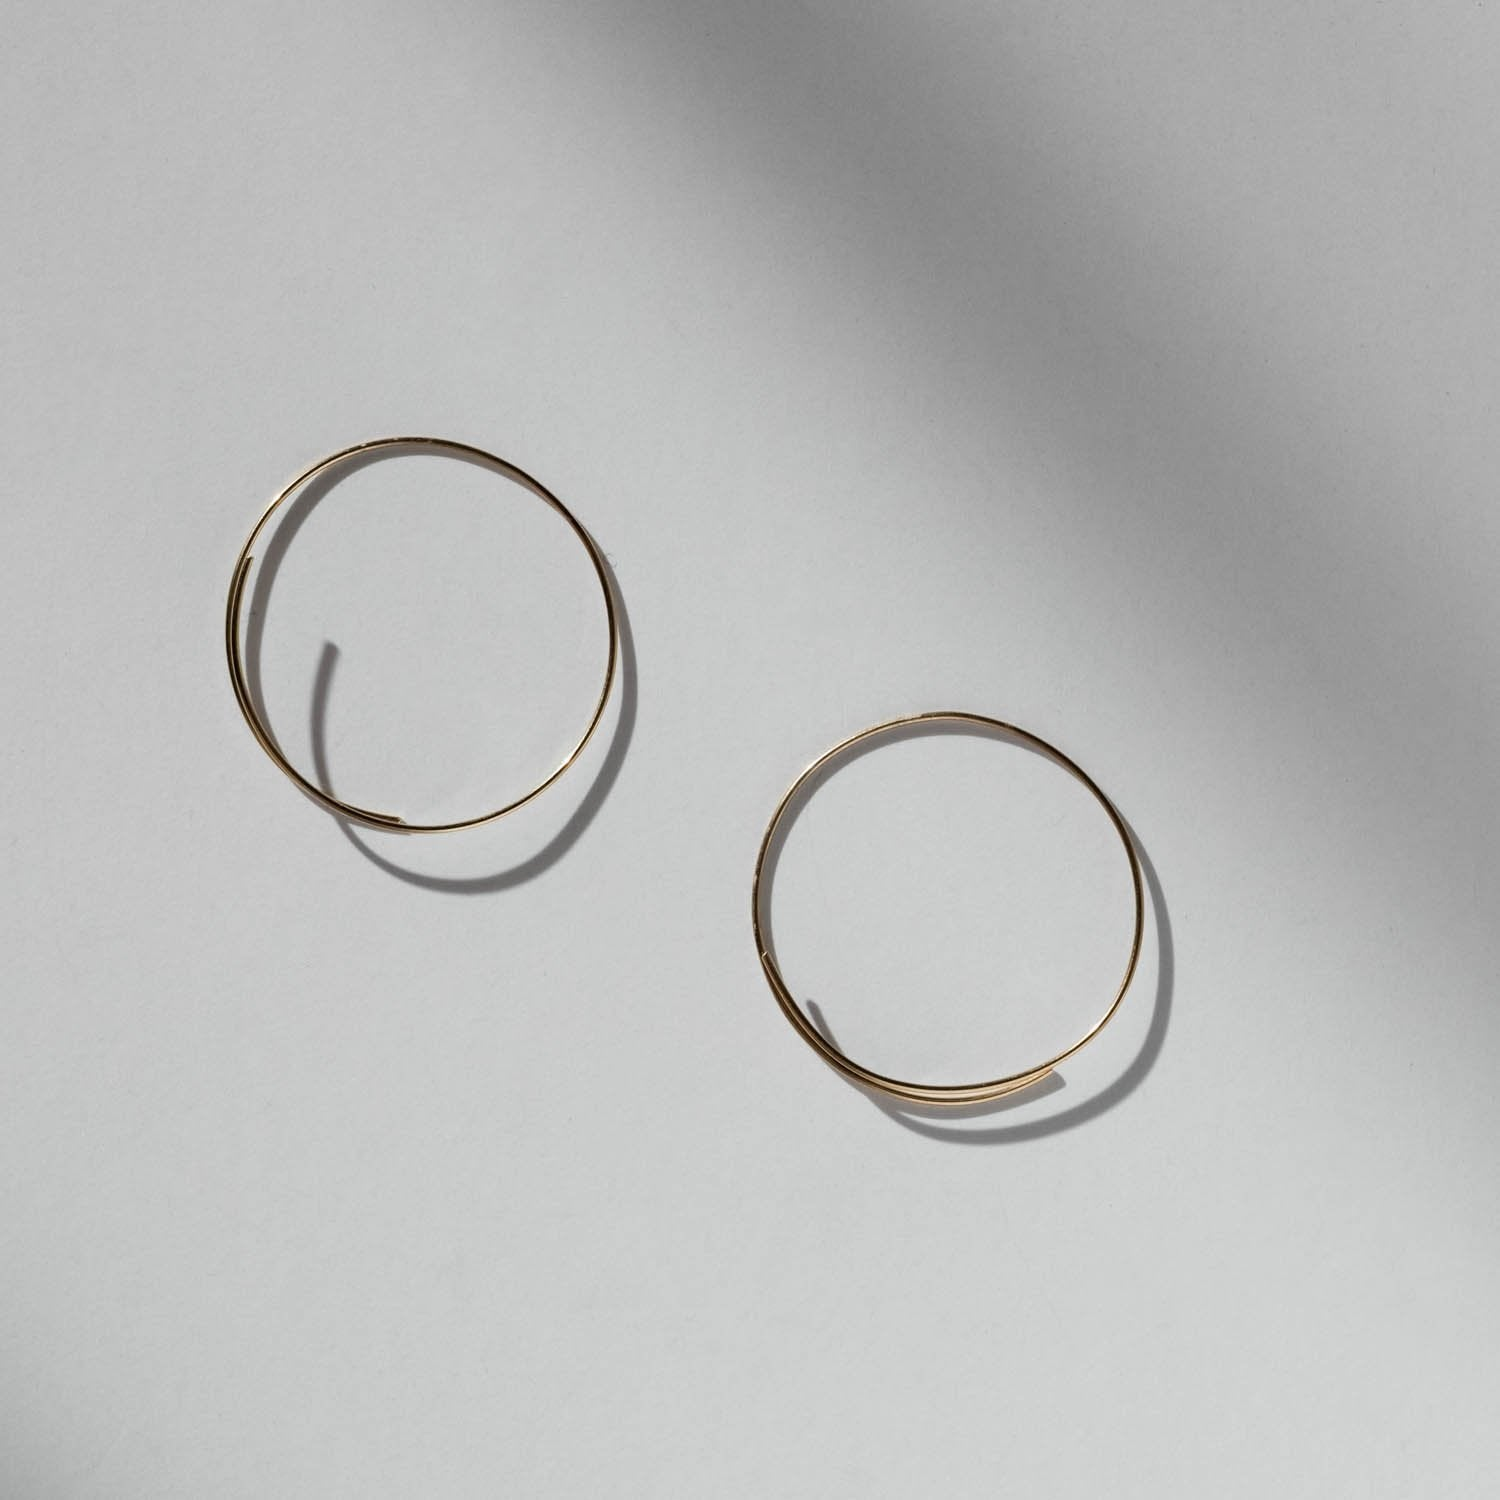 Whisper Hoop Earrings - 5